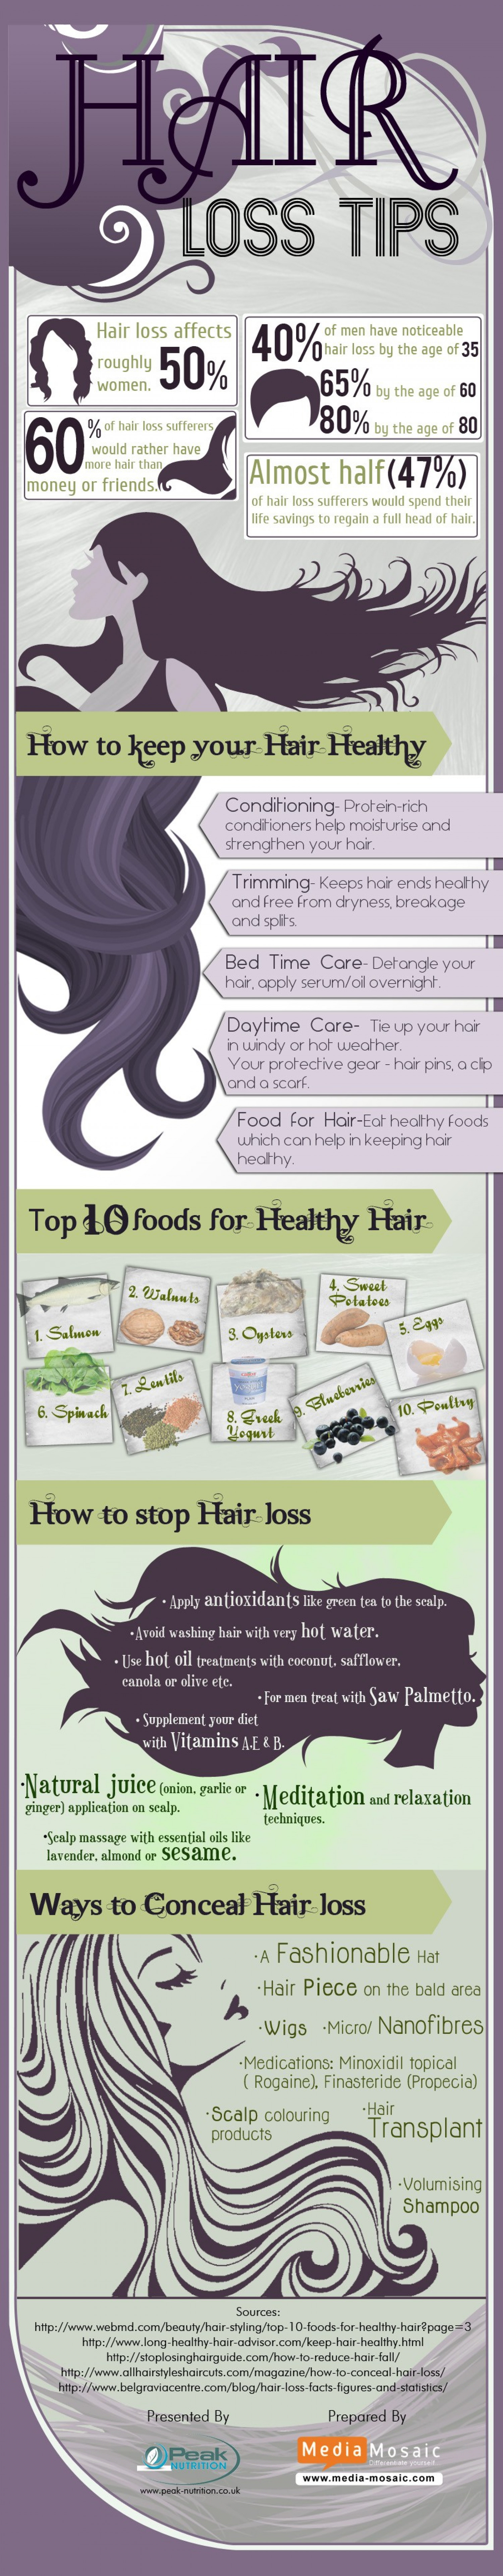 Hair Loss Tips Infographic